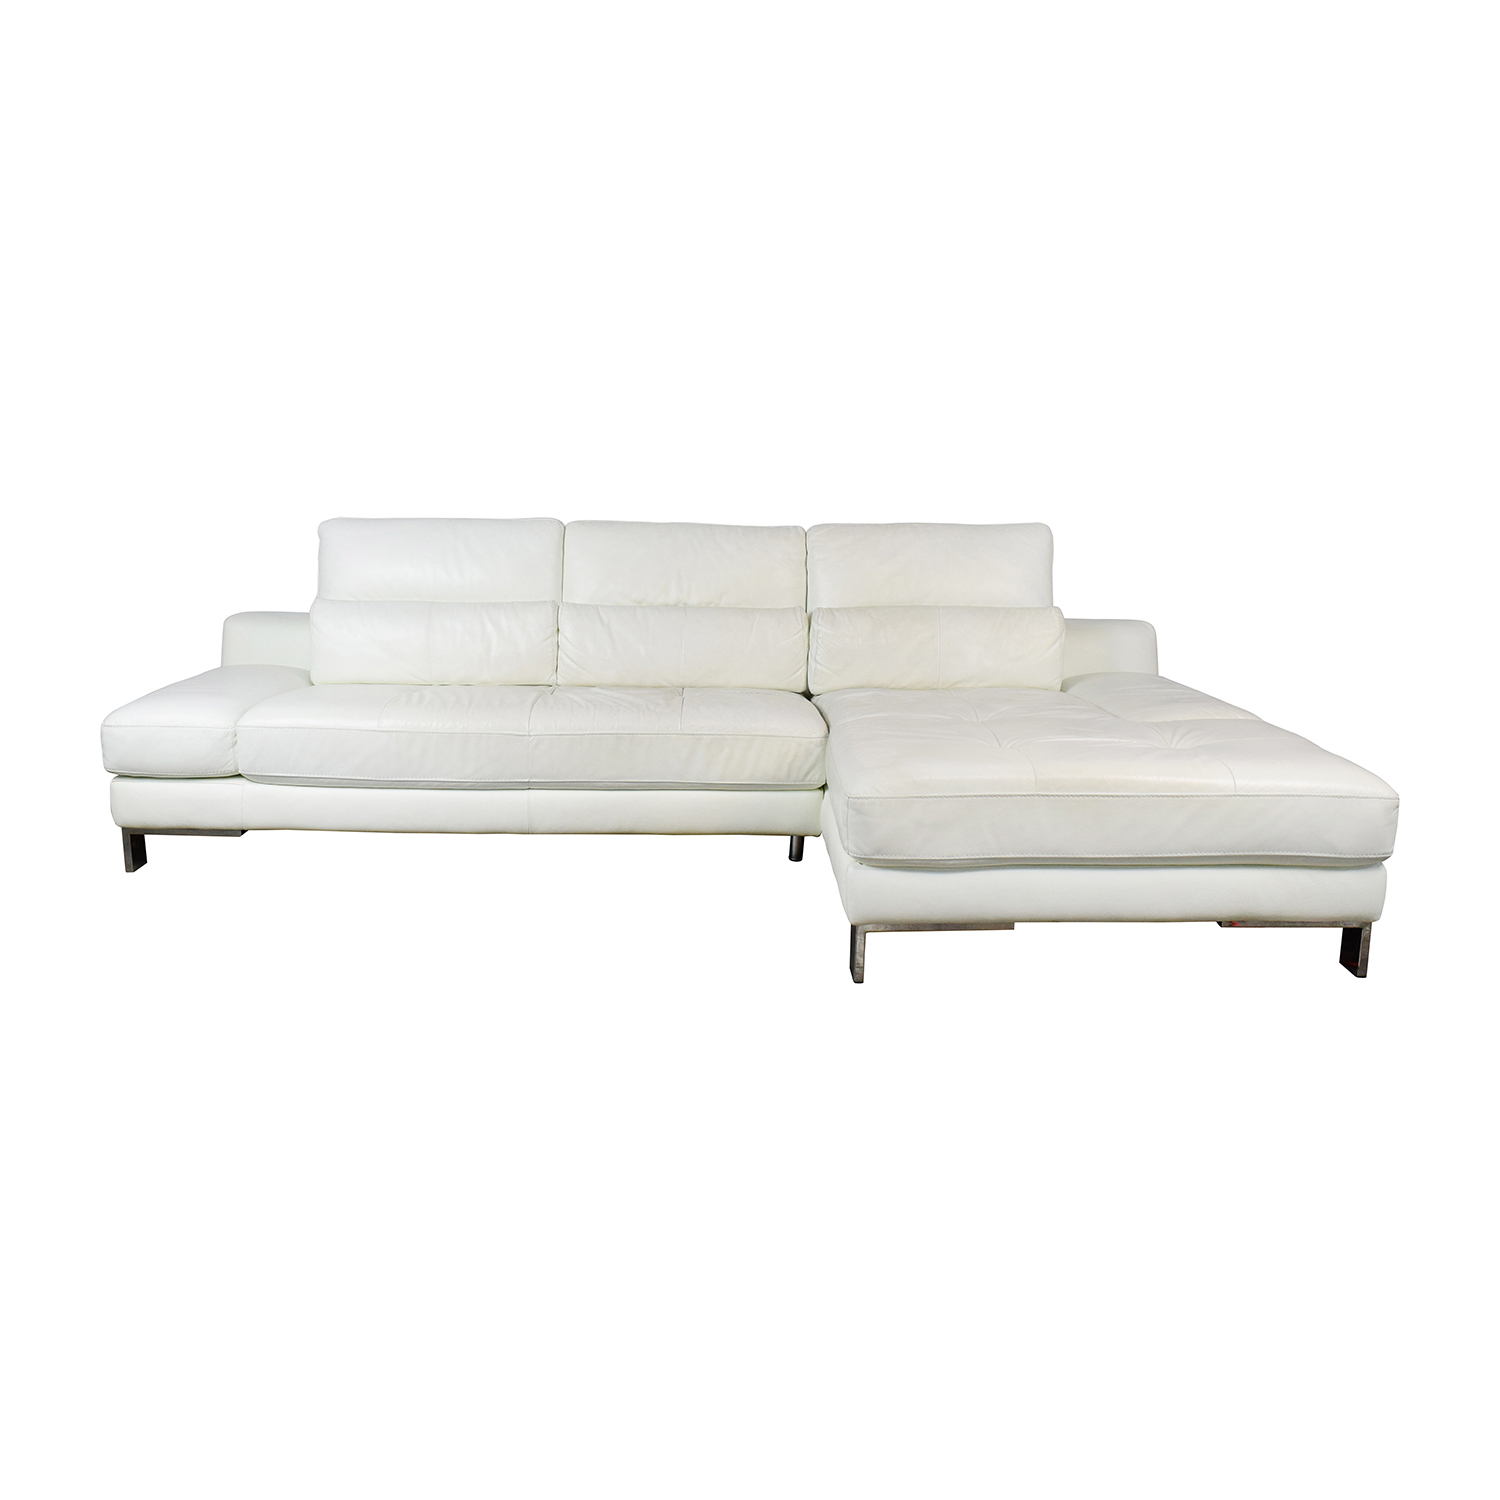 Mobilia Canada Funktion White Leather Sectional Mobilia Canada